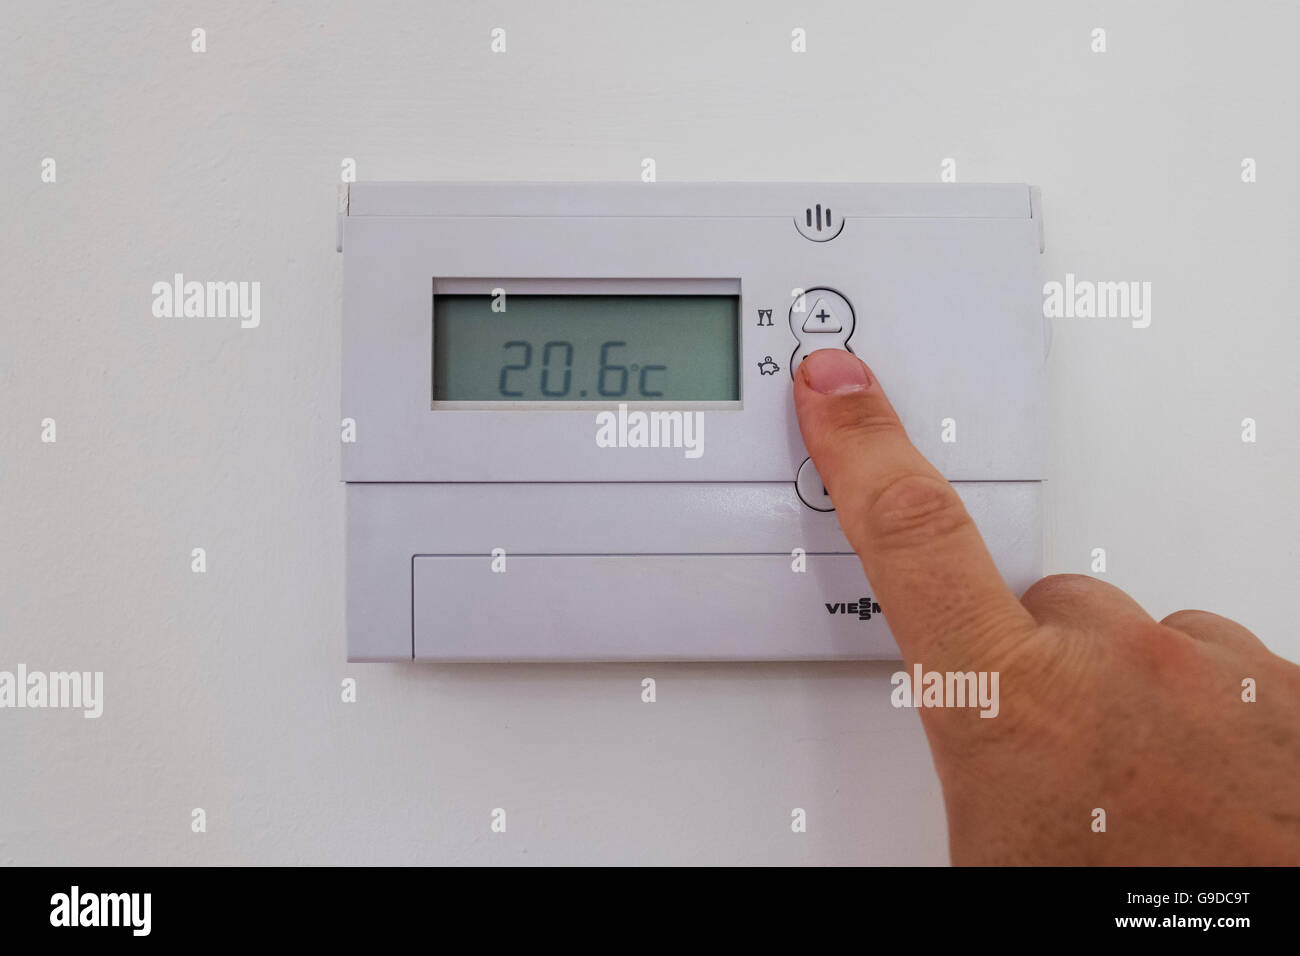 Man adjusting home central heating thermostat to lower temperature and save energy and money. - Stock Image